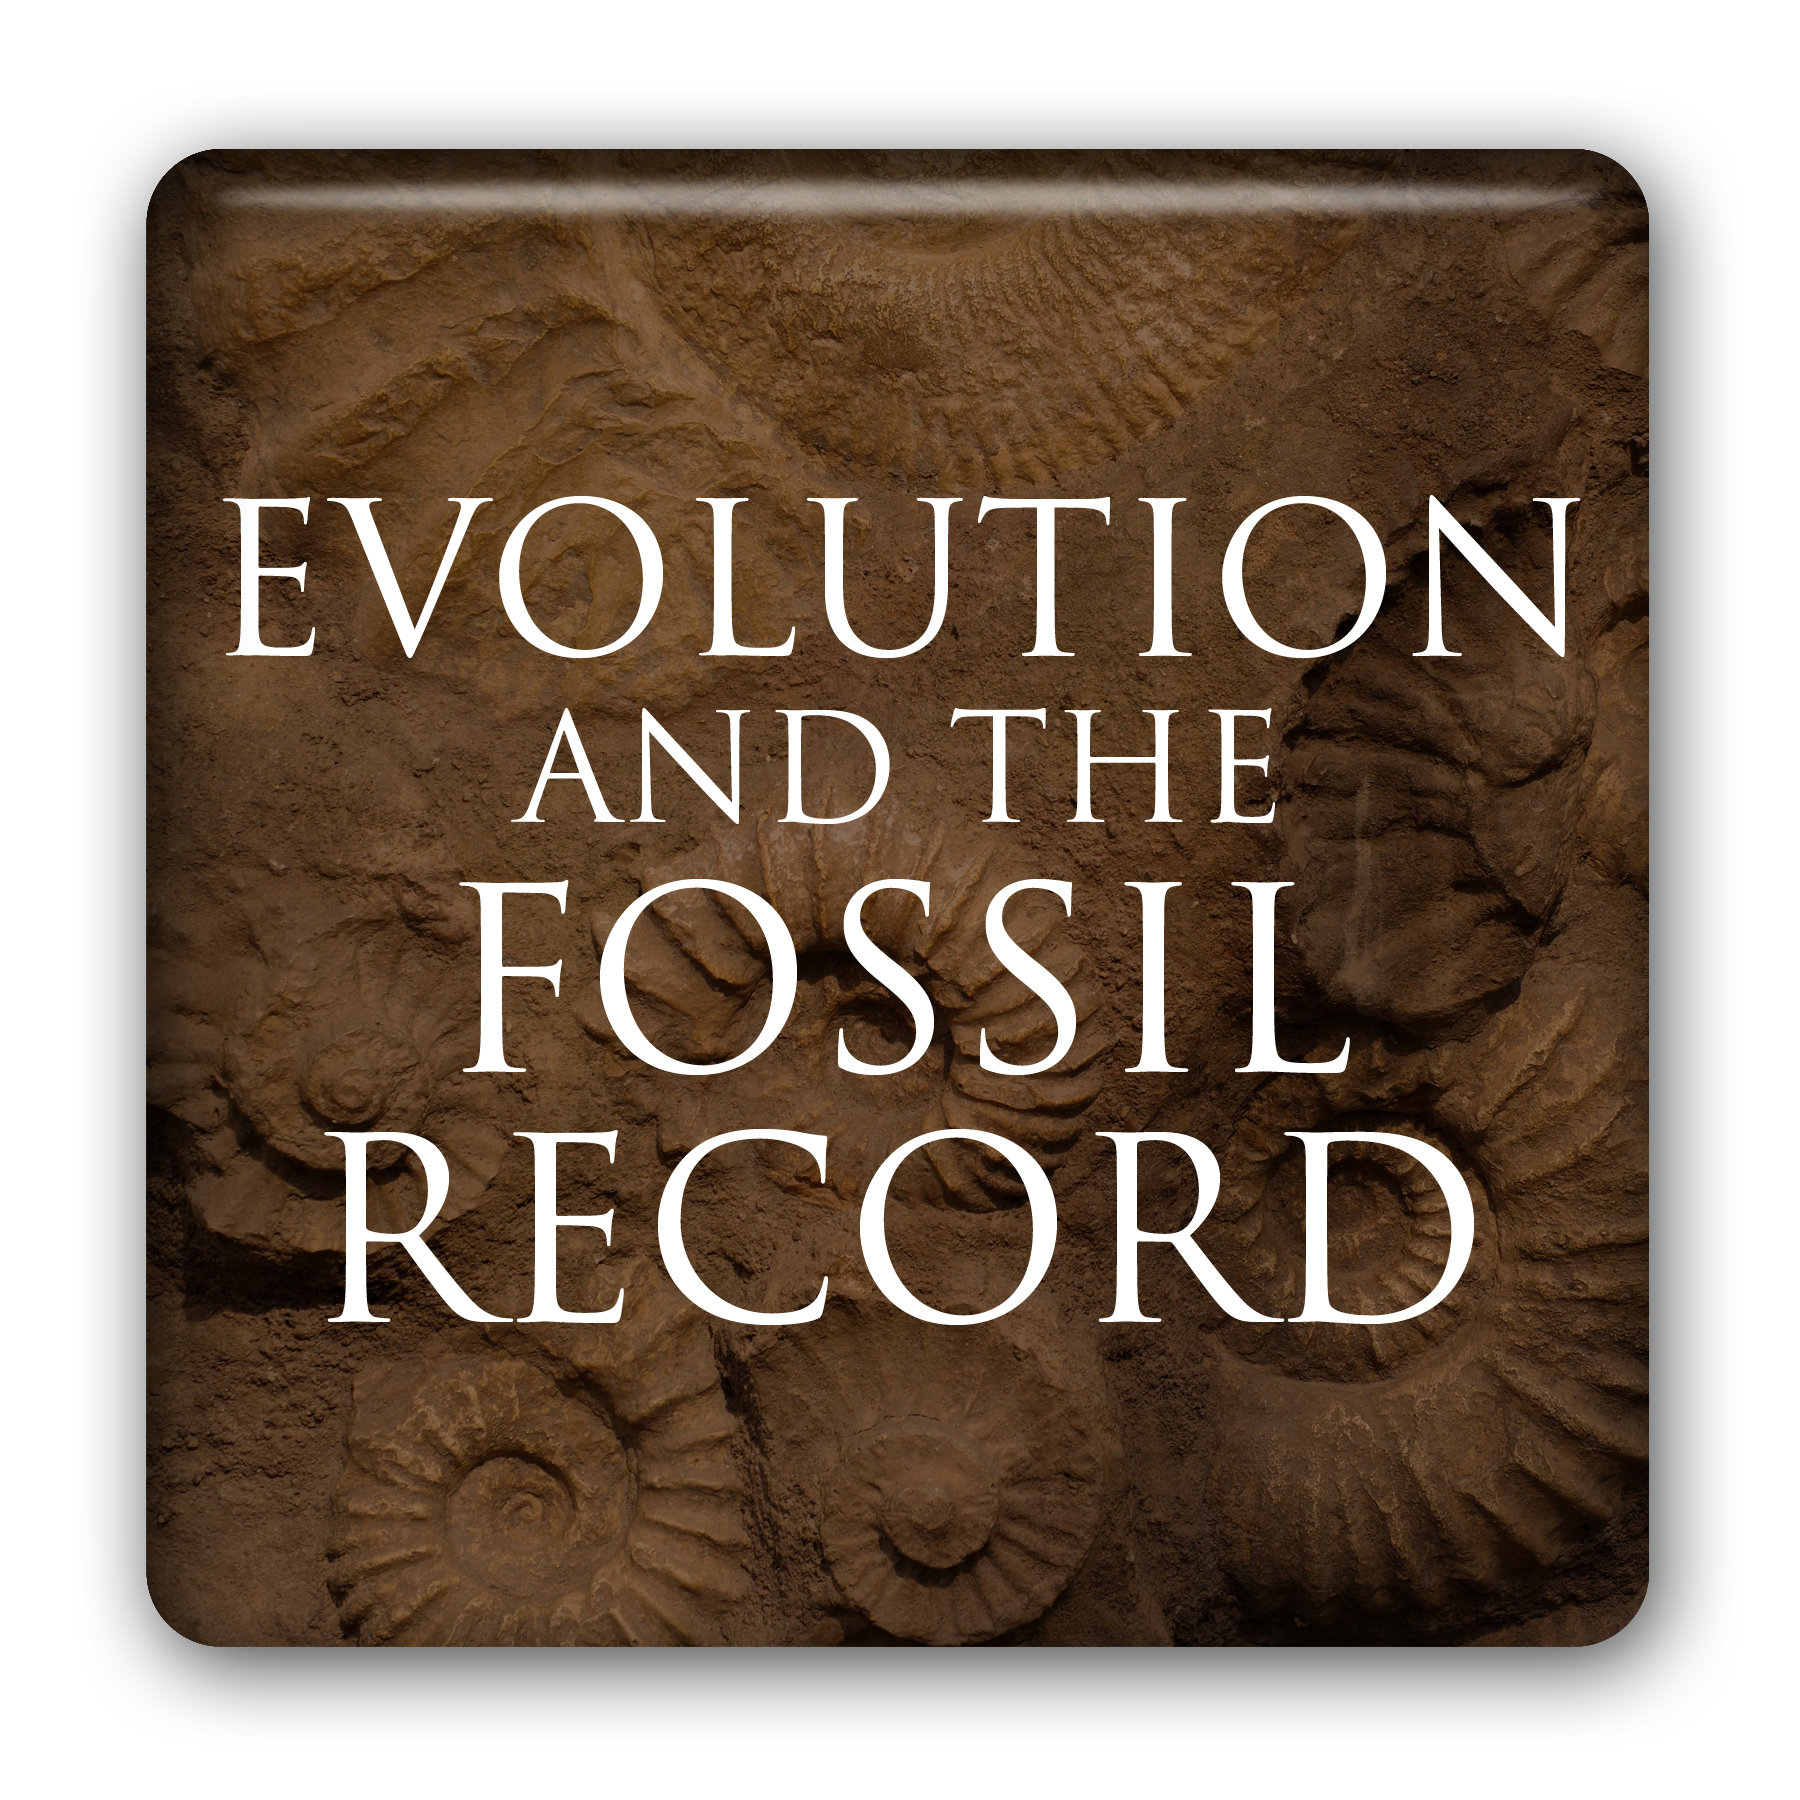 Evolution and the Fossil Record (Listen & Learn Course) Hugh Ross; Fazale Rana Image